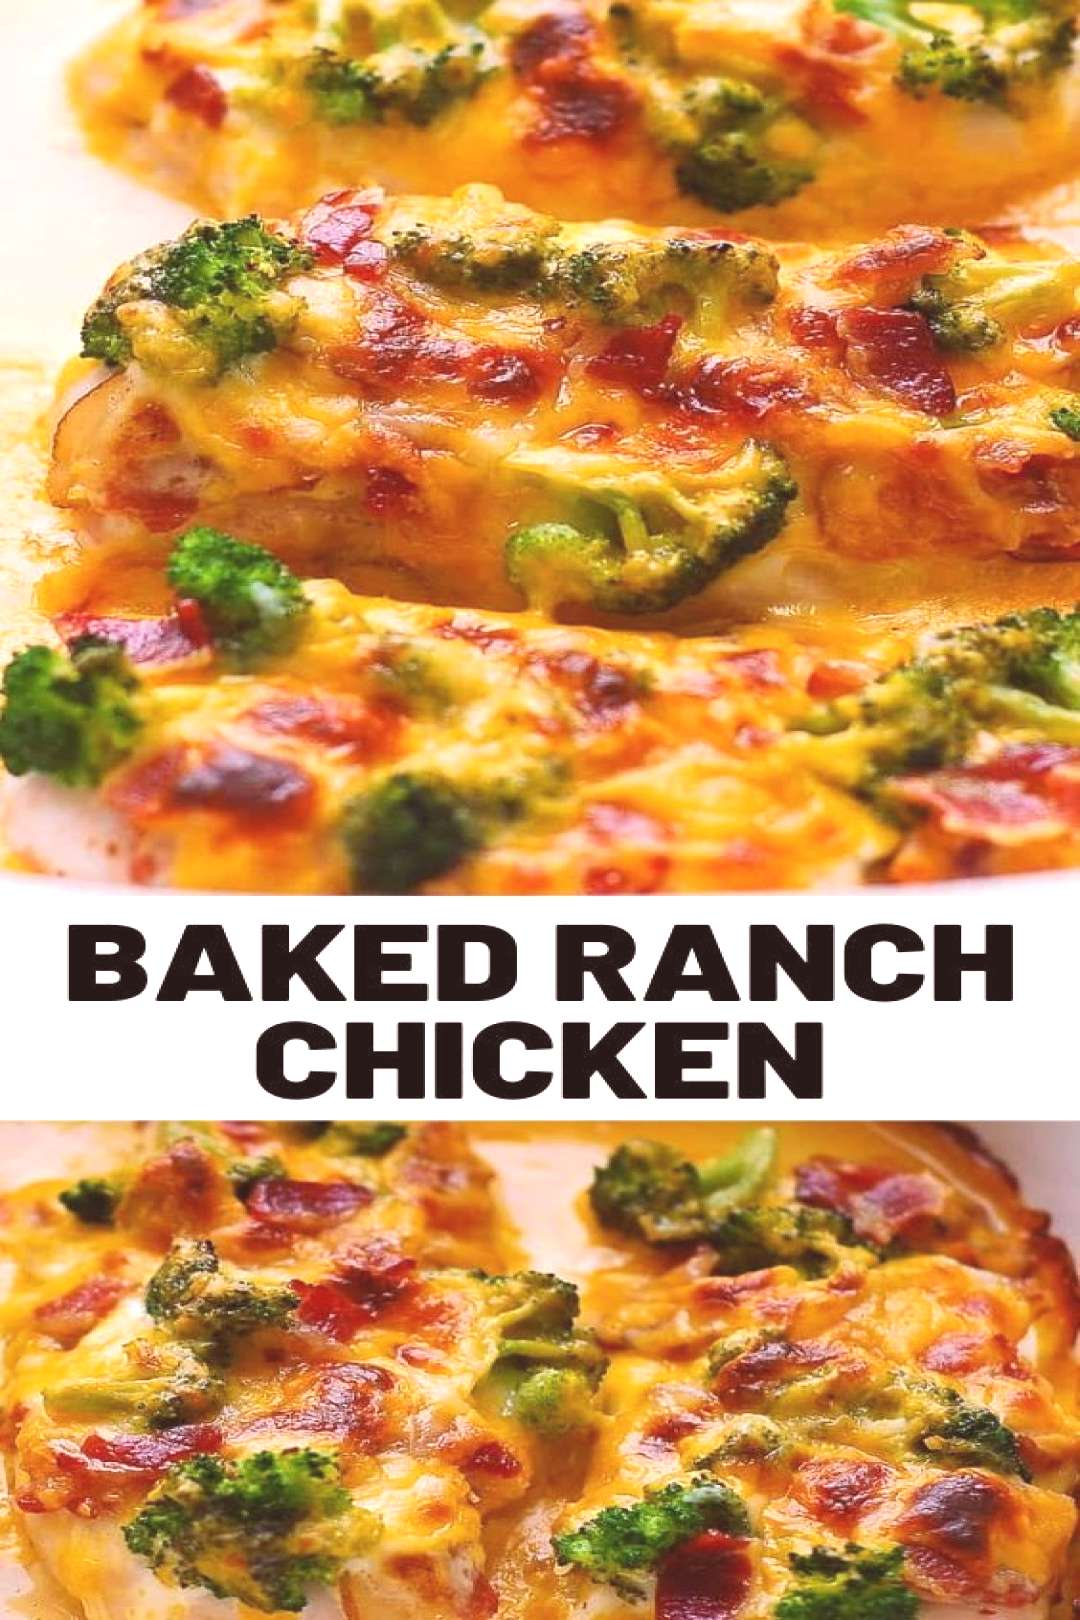 Baked Ranch Chicken with Broccoli and Bacon This easy Baked Ranch Chicken with Broccoli and Bacon i